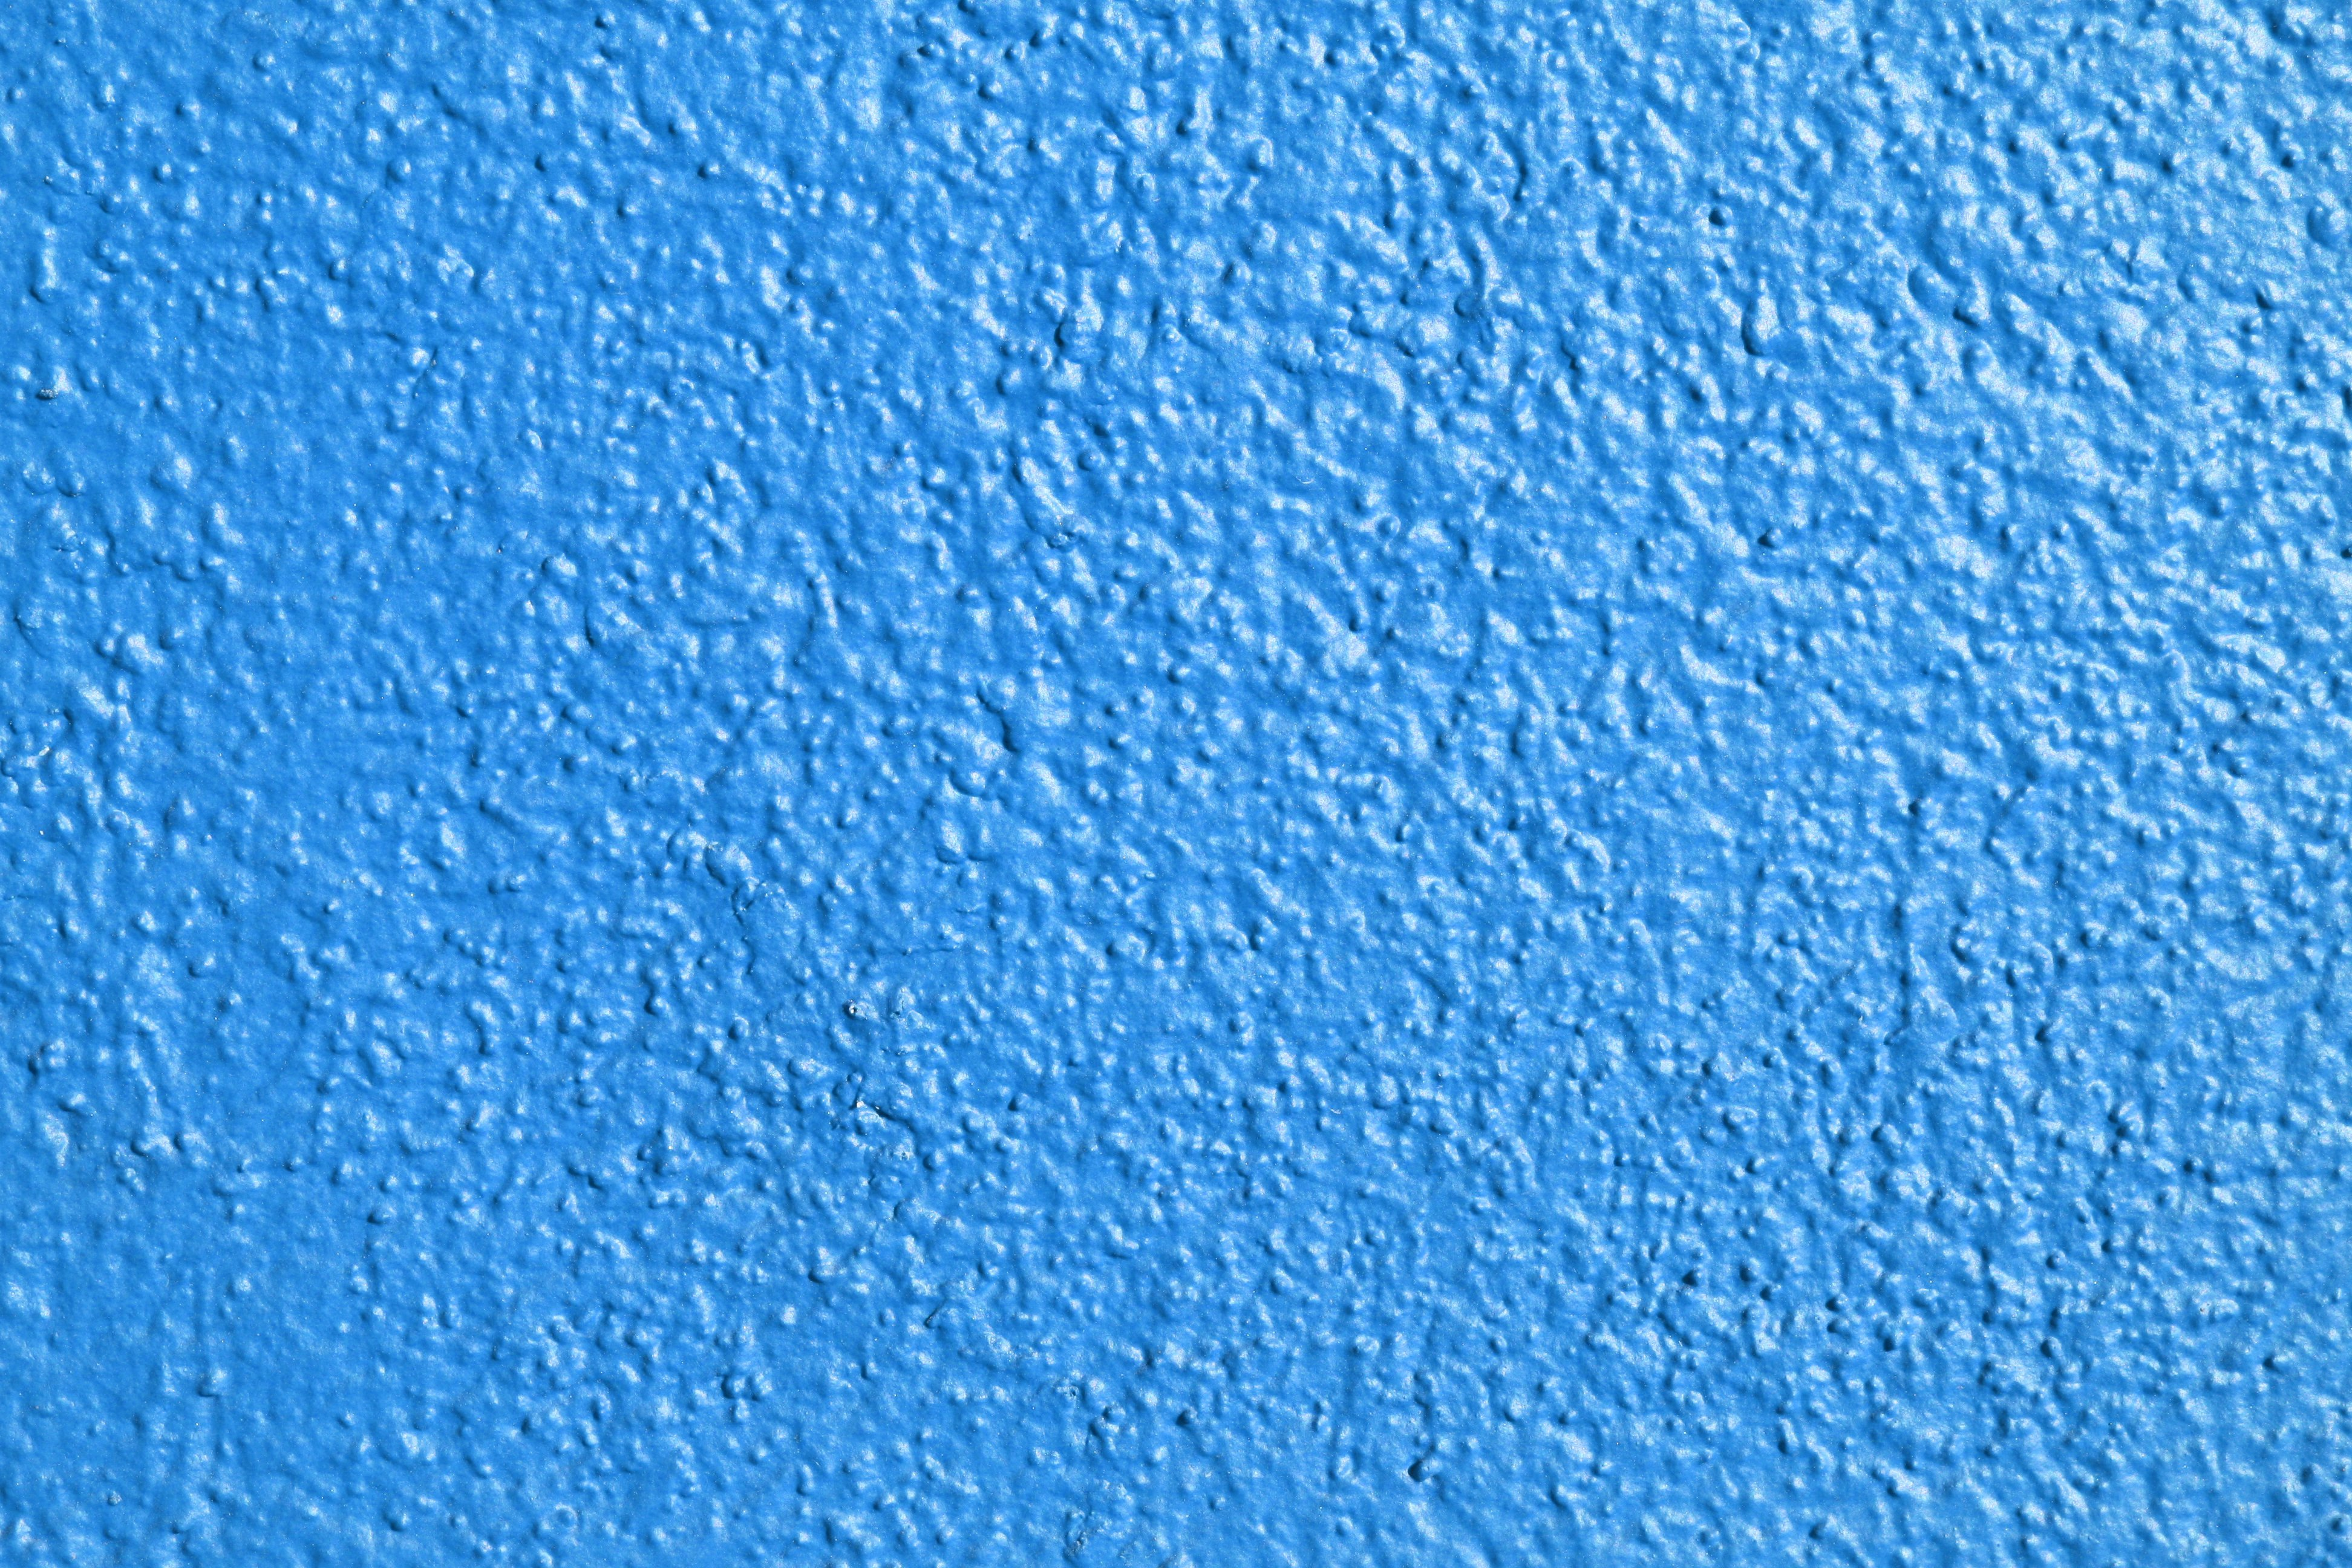 Sky Blue Painted Wall Texture